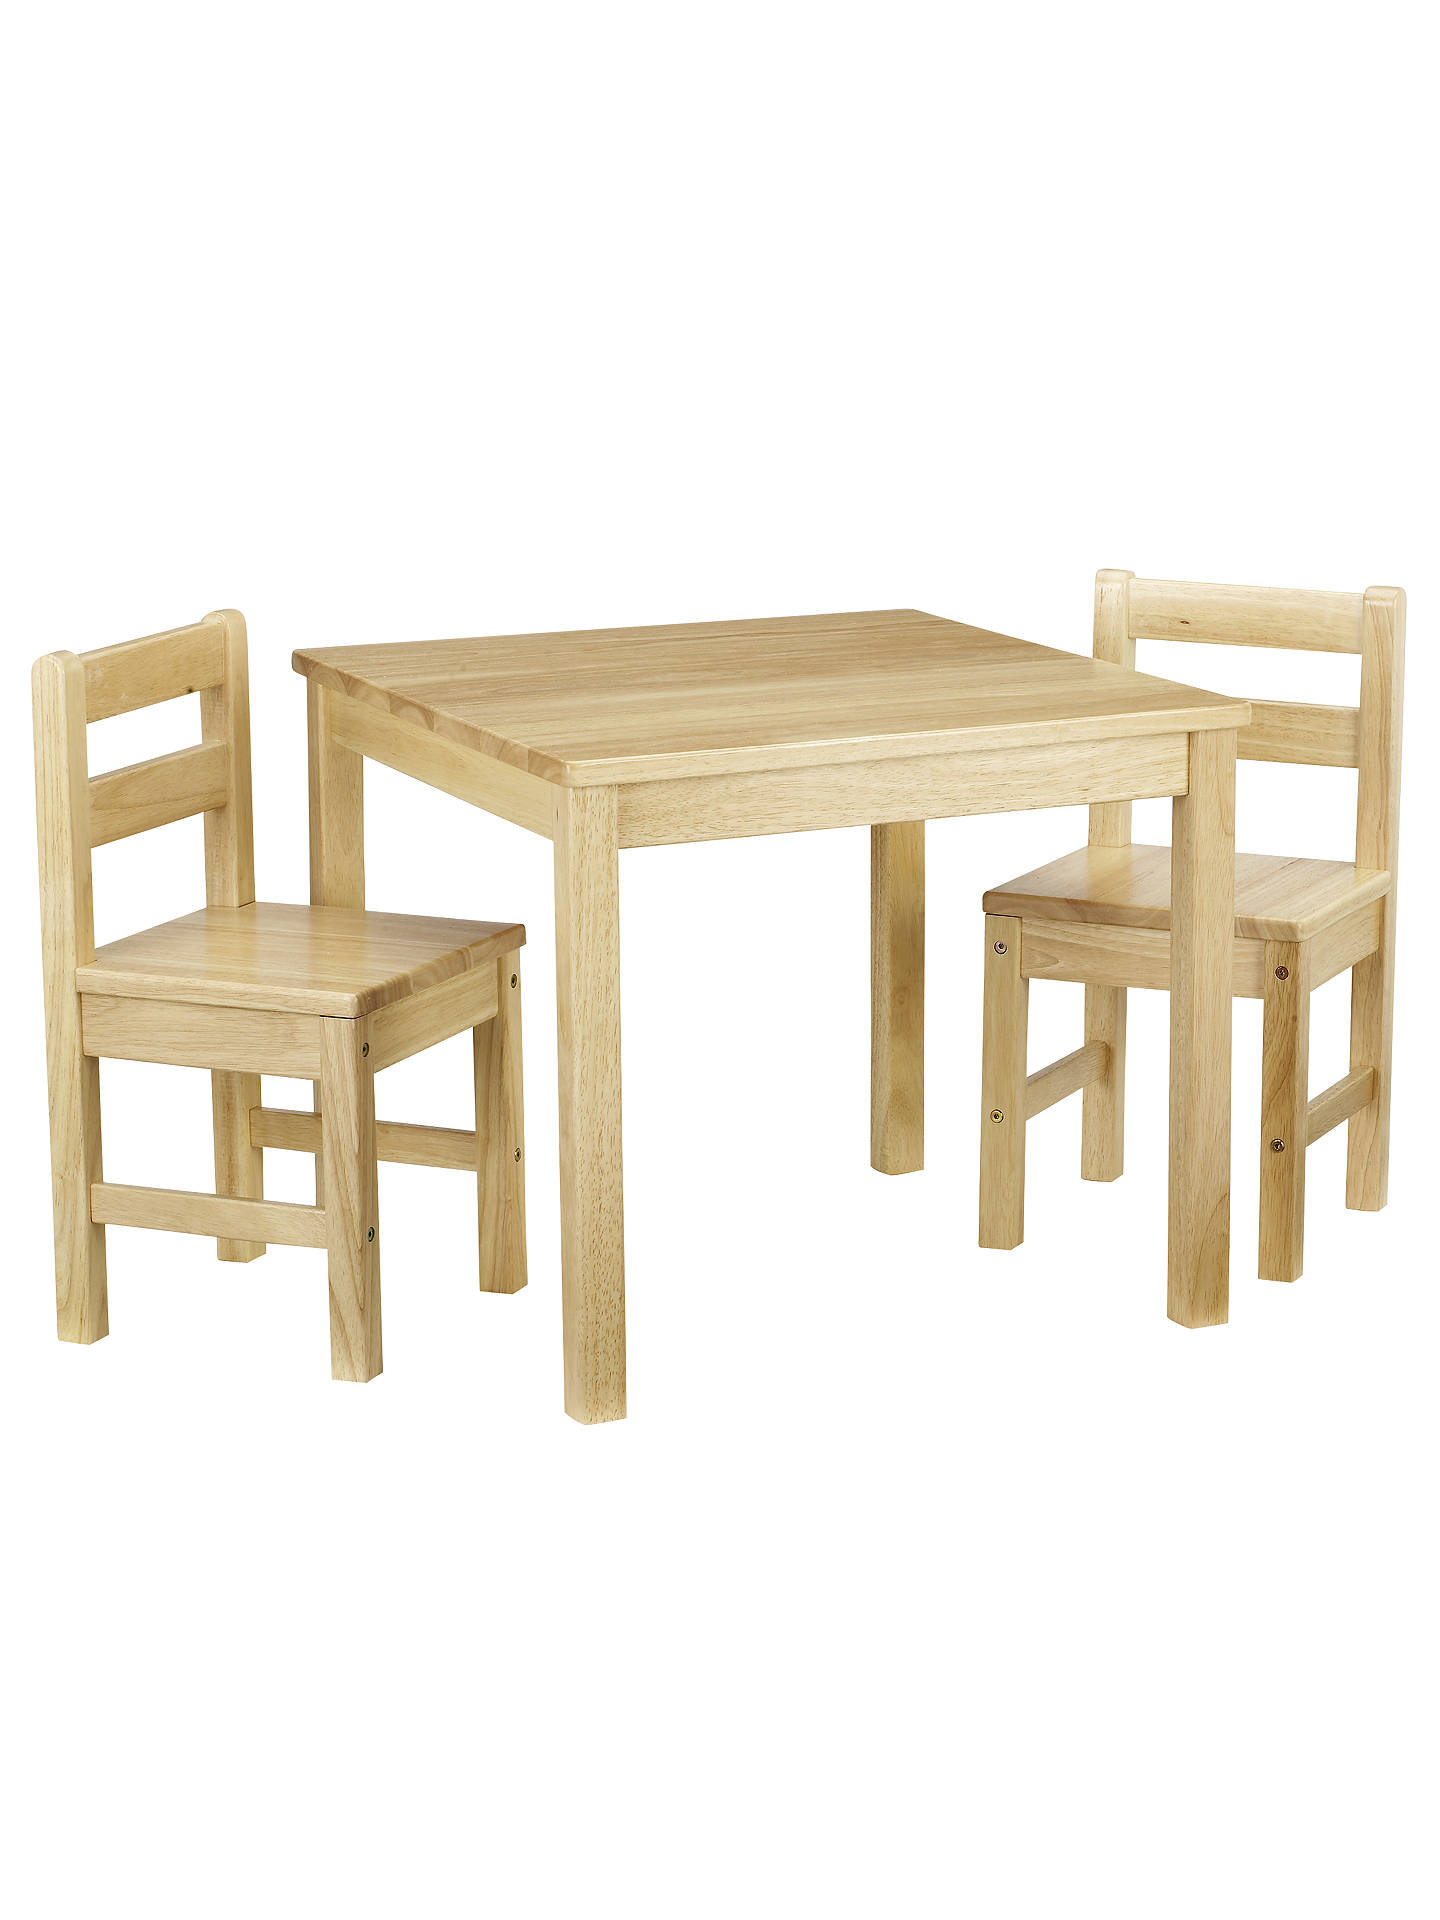 john lewis classic table and chairs natural at john lewis